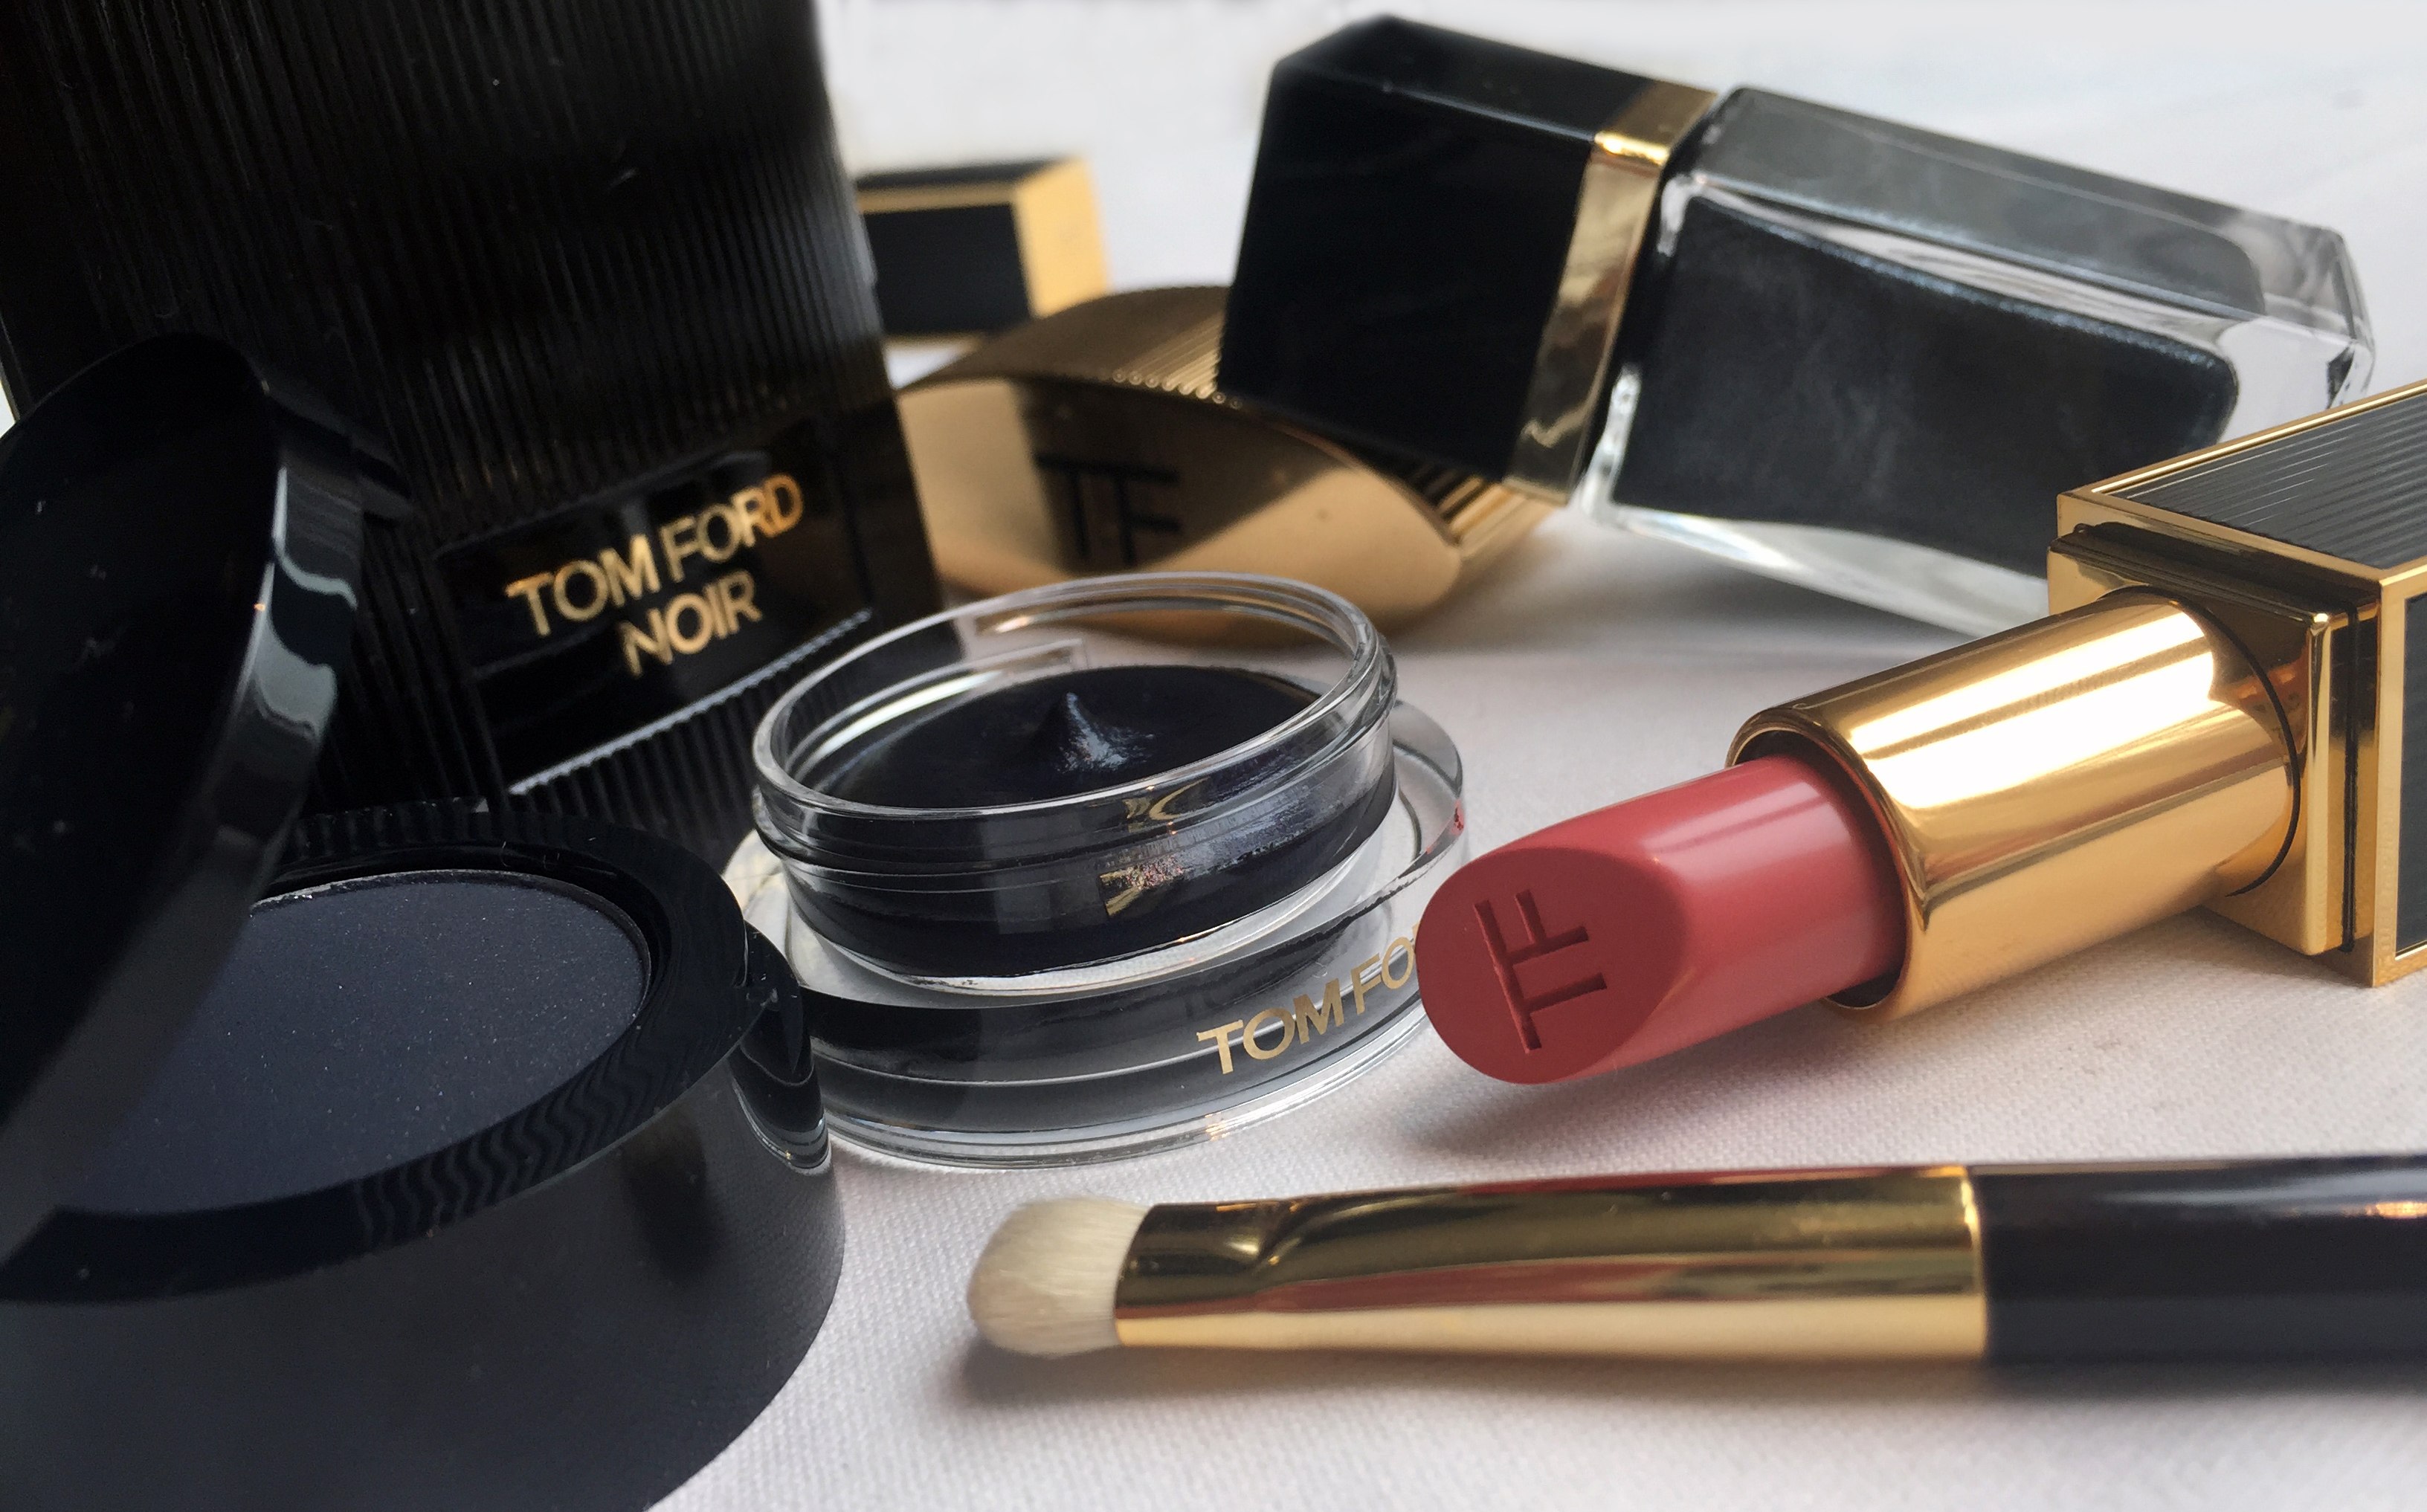 Tom Ford Noir Holiday 2015 Makeup Collection